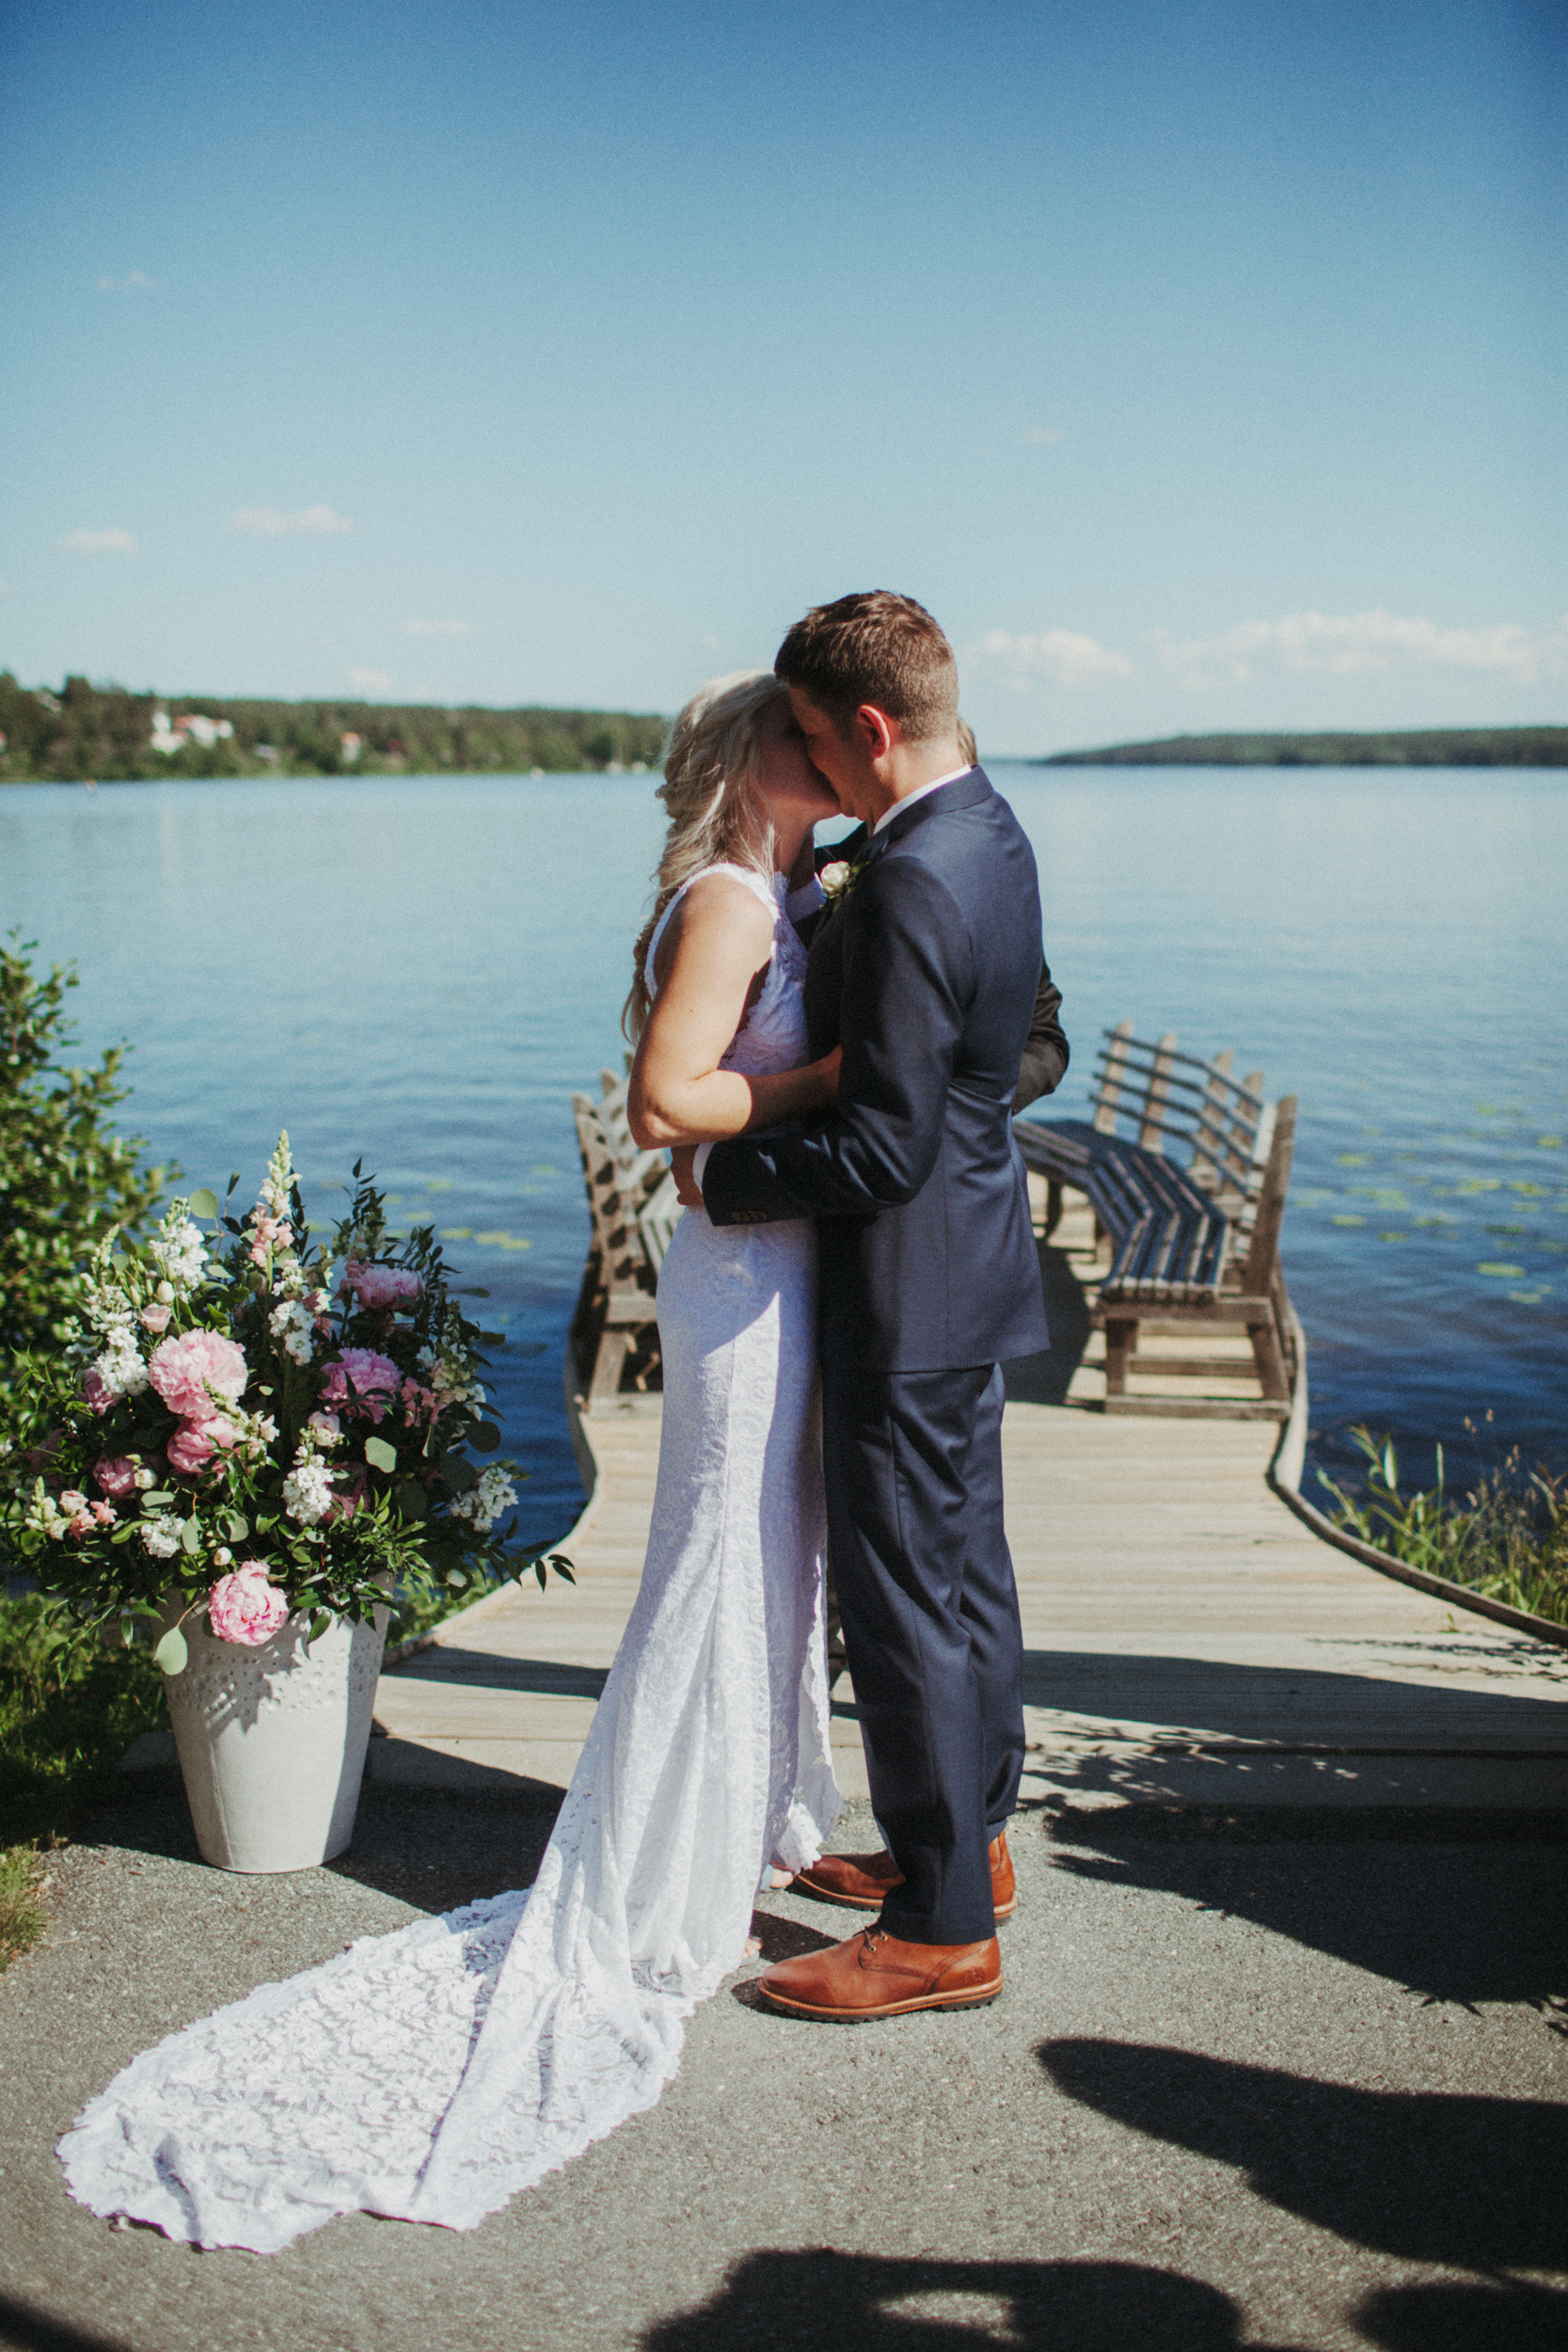 sigtuna-sweden-wedding_m_e-76.jpg